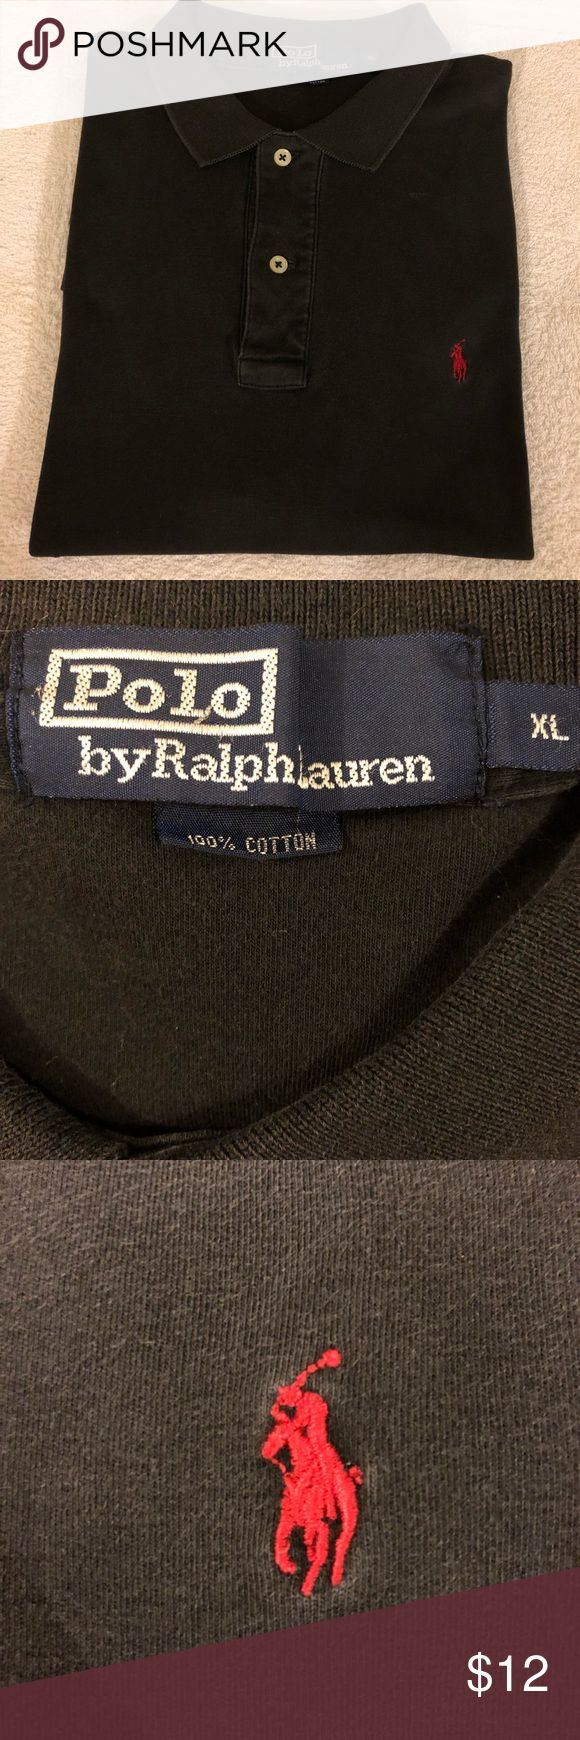 Polo Ralph Lauren Solid Black Polo Shirt XL Polo Ralph Lauren Solid Black With Red Pony Logo Short Sleeve Polo Shirt size XL! Great condition! Please make reasonable offers and bundle! Ask questions! :) Polo by Ralph Lauren Shirts Polos